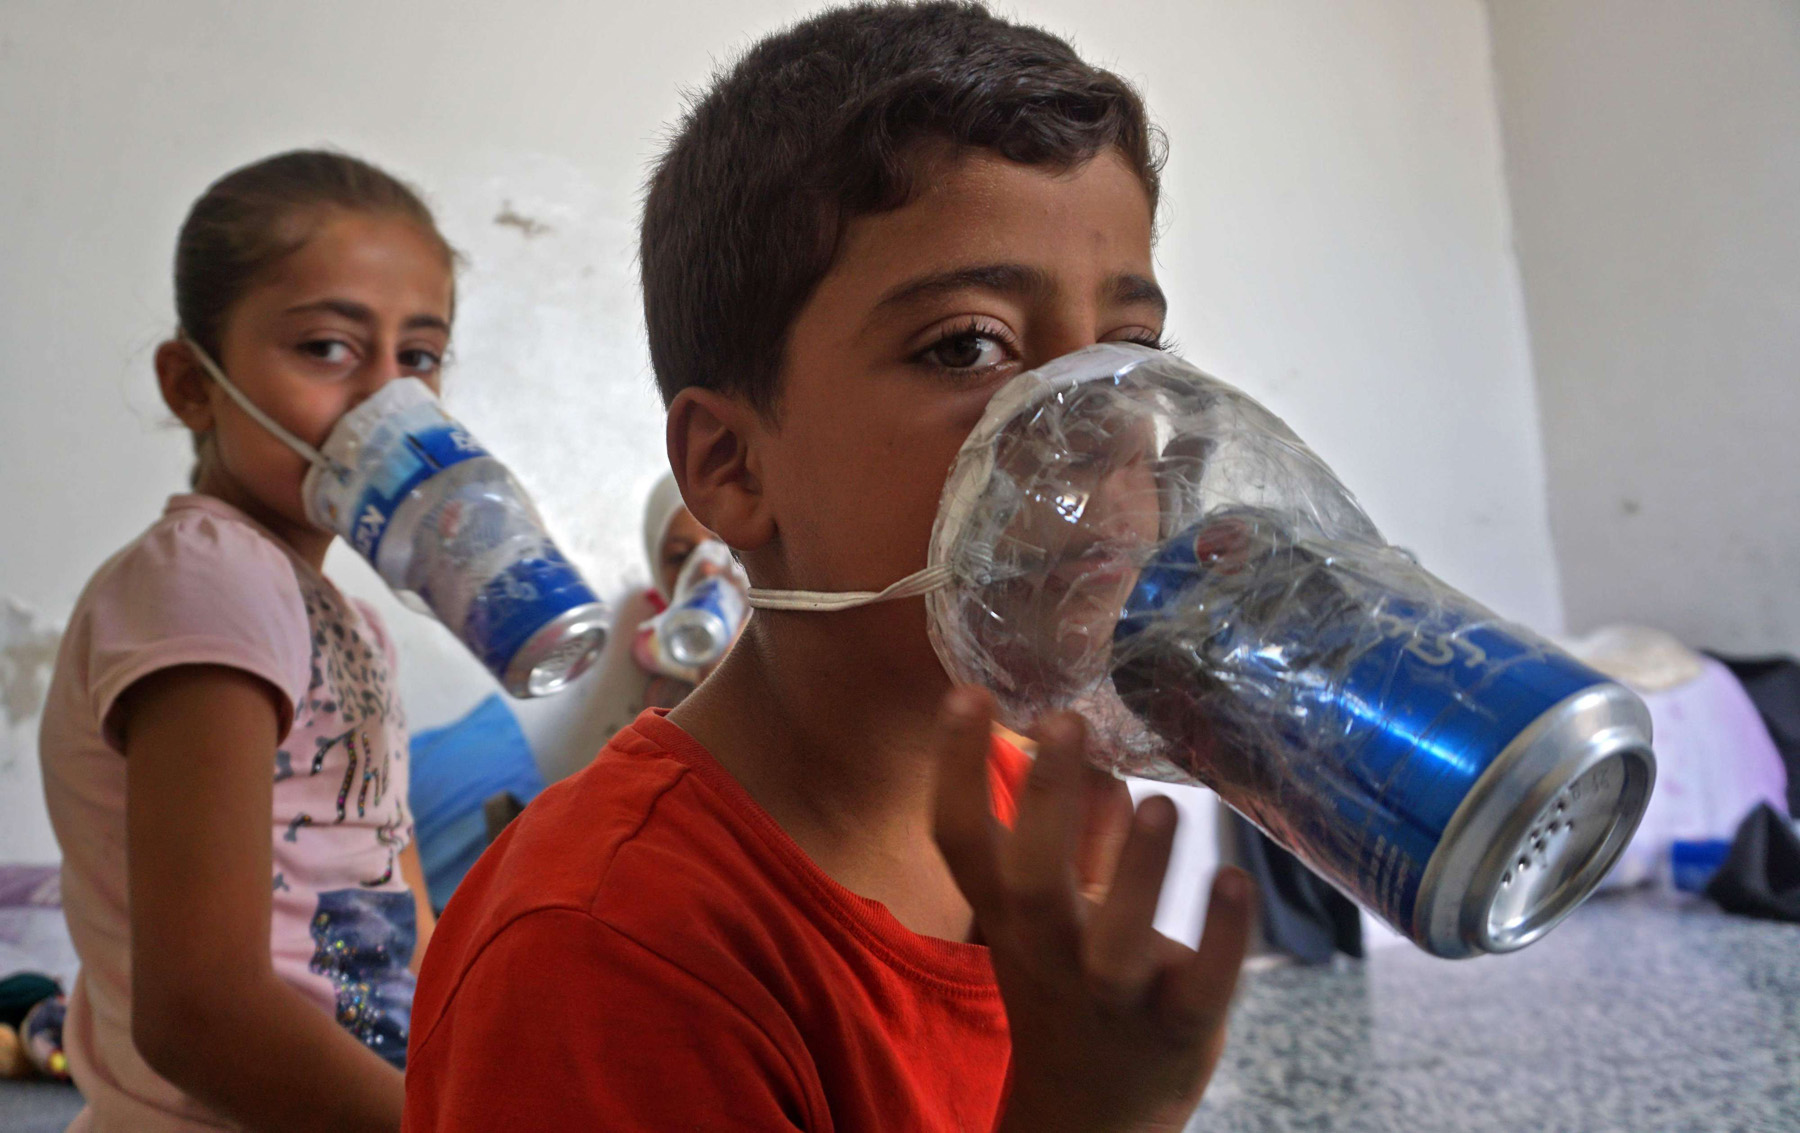 Children try improvised gas masks in their home in northern Idlib province, on September 12. (AFP)